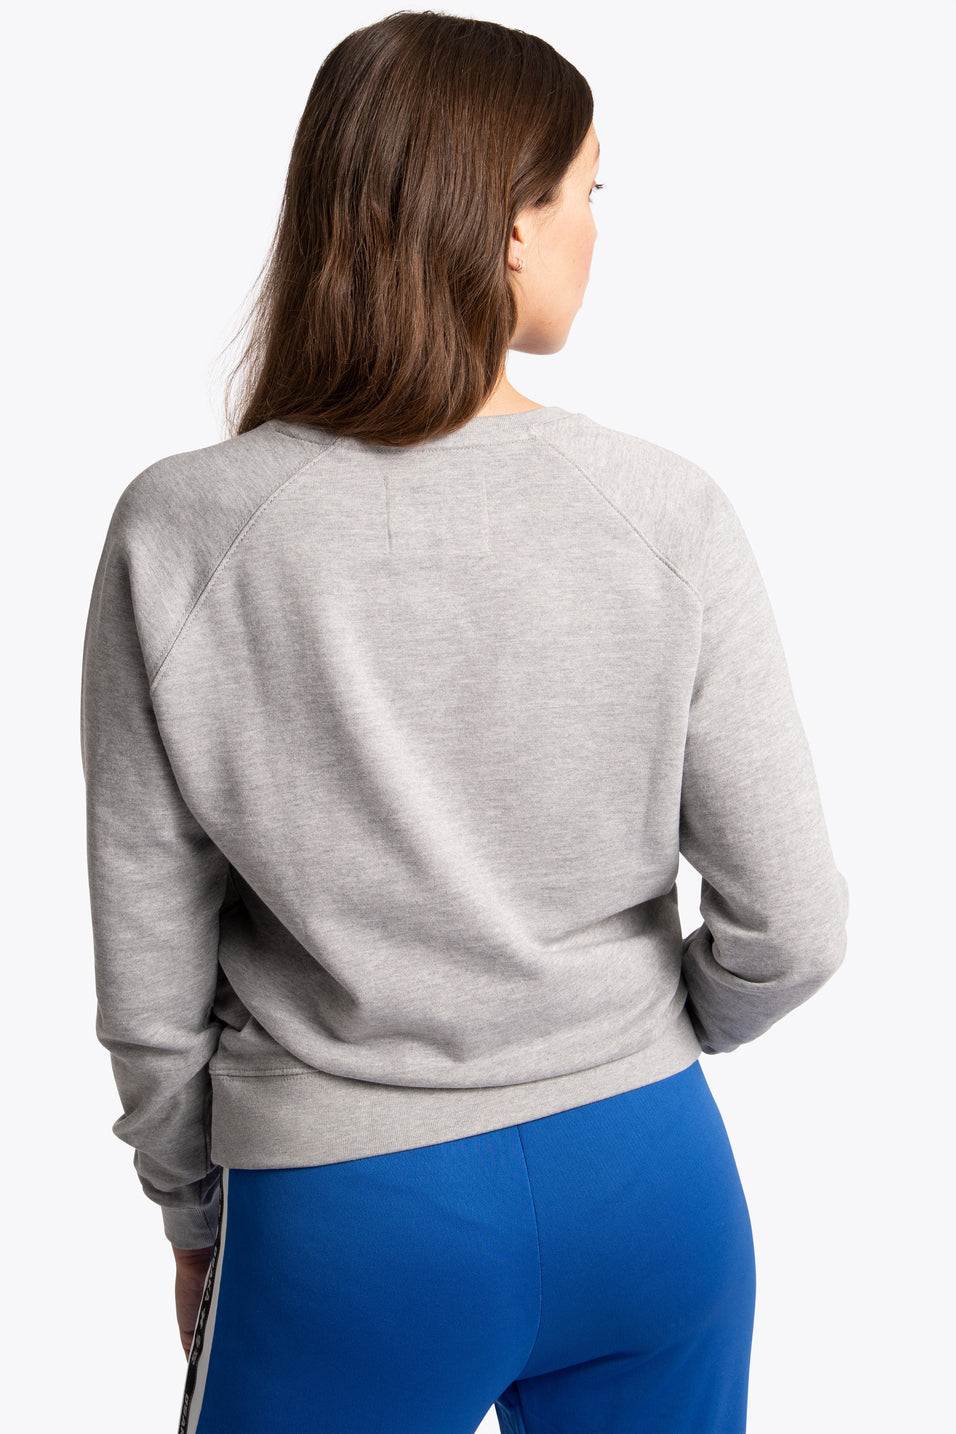 osakaworld women sweater preppy grey